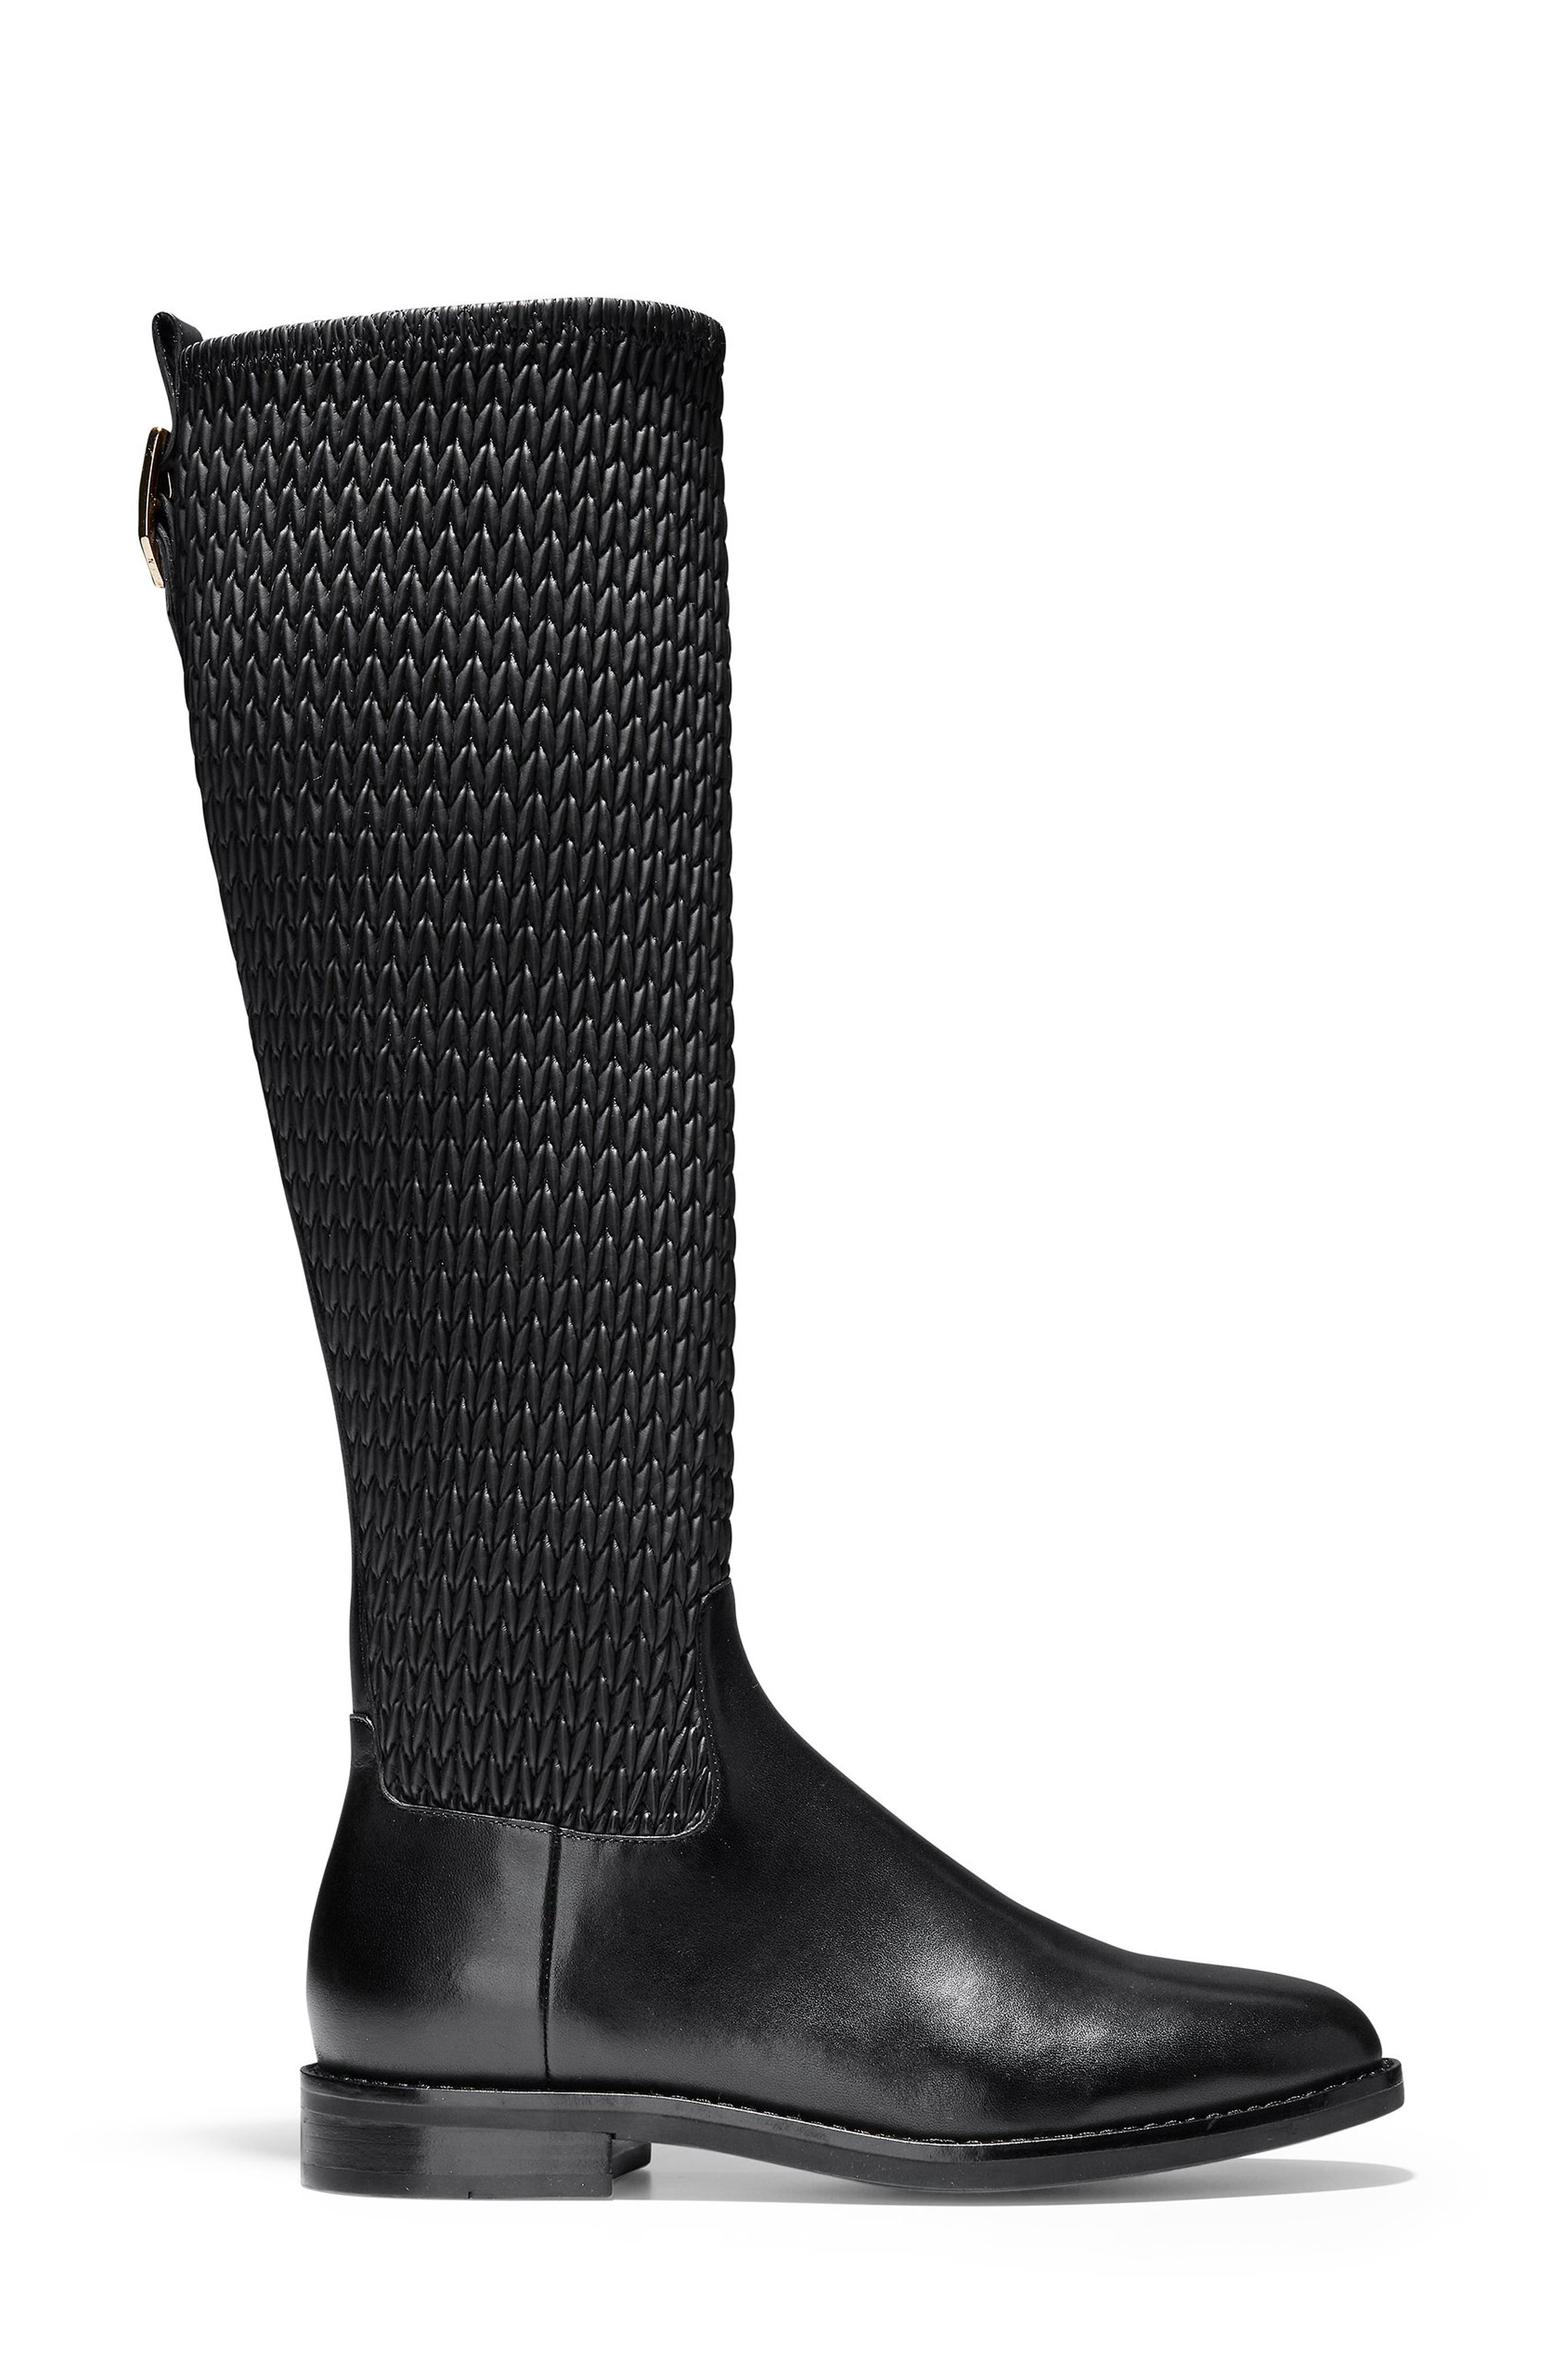 COLE HAAN, Lexi Grand Knee High Stretch Boot, Alternate thumbnail 3, color, BLACK LEATHER